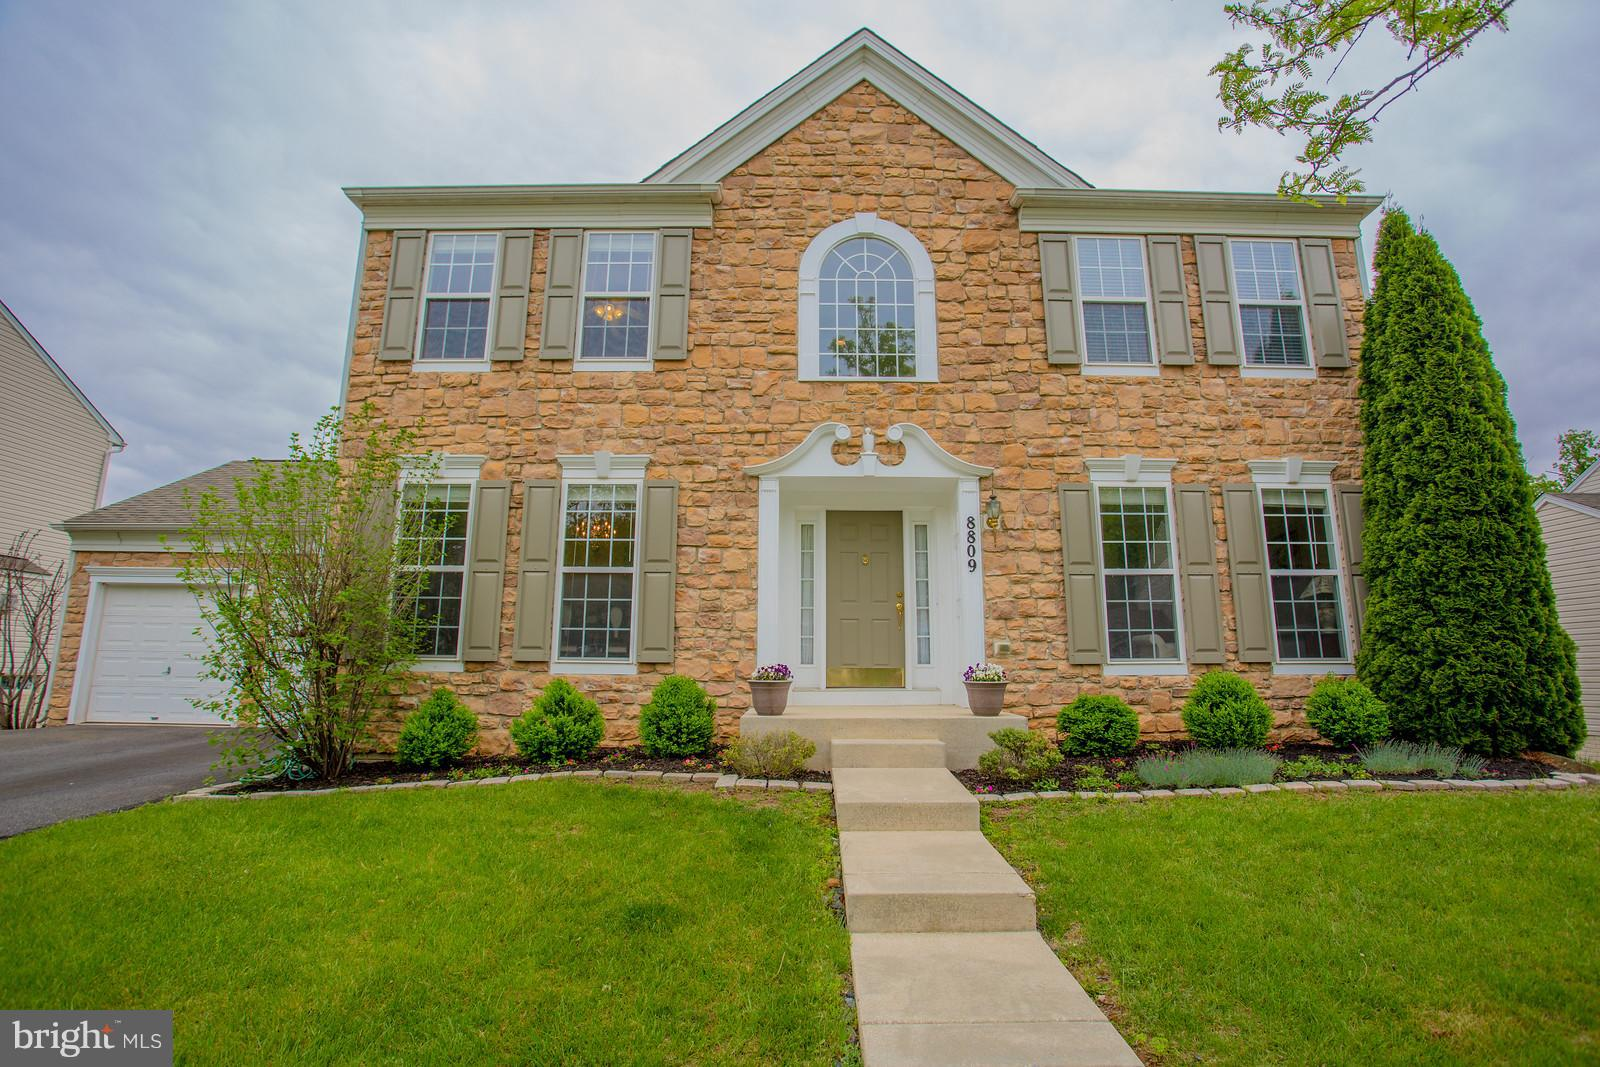 8809 BAILEYS COURT, PERRY HALL, MD 21128